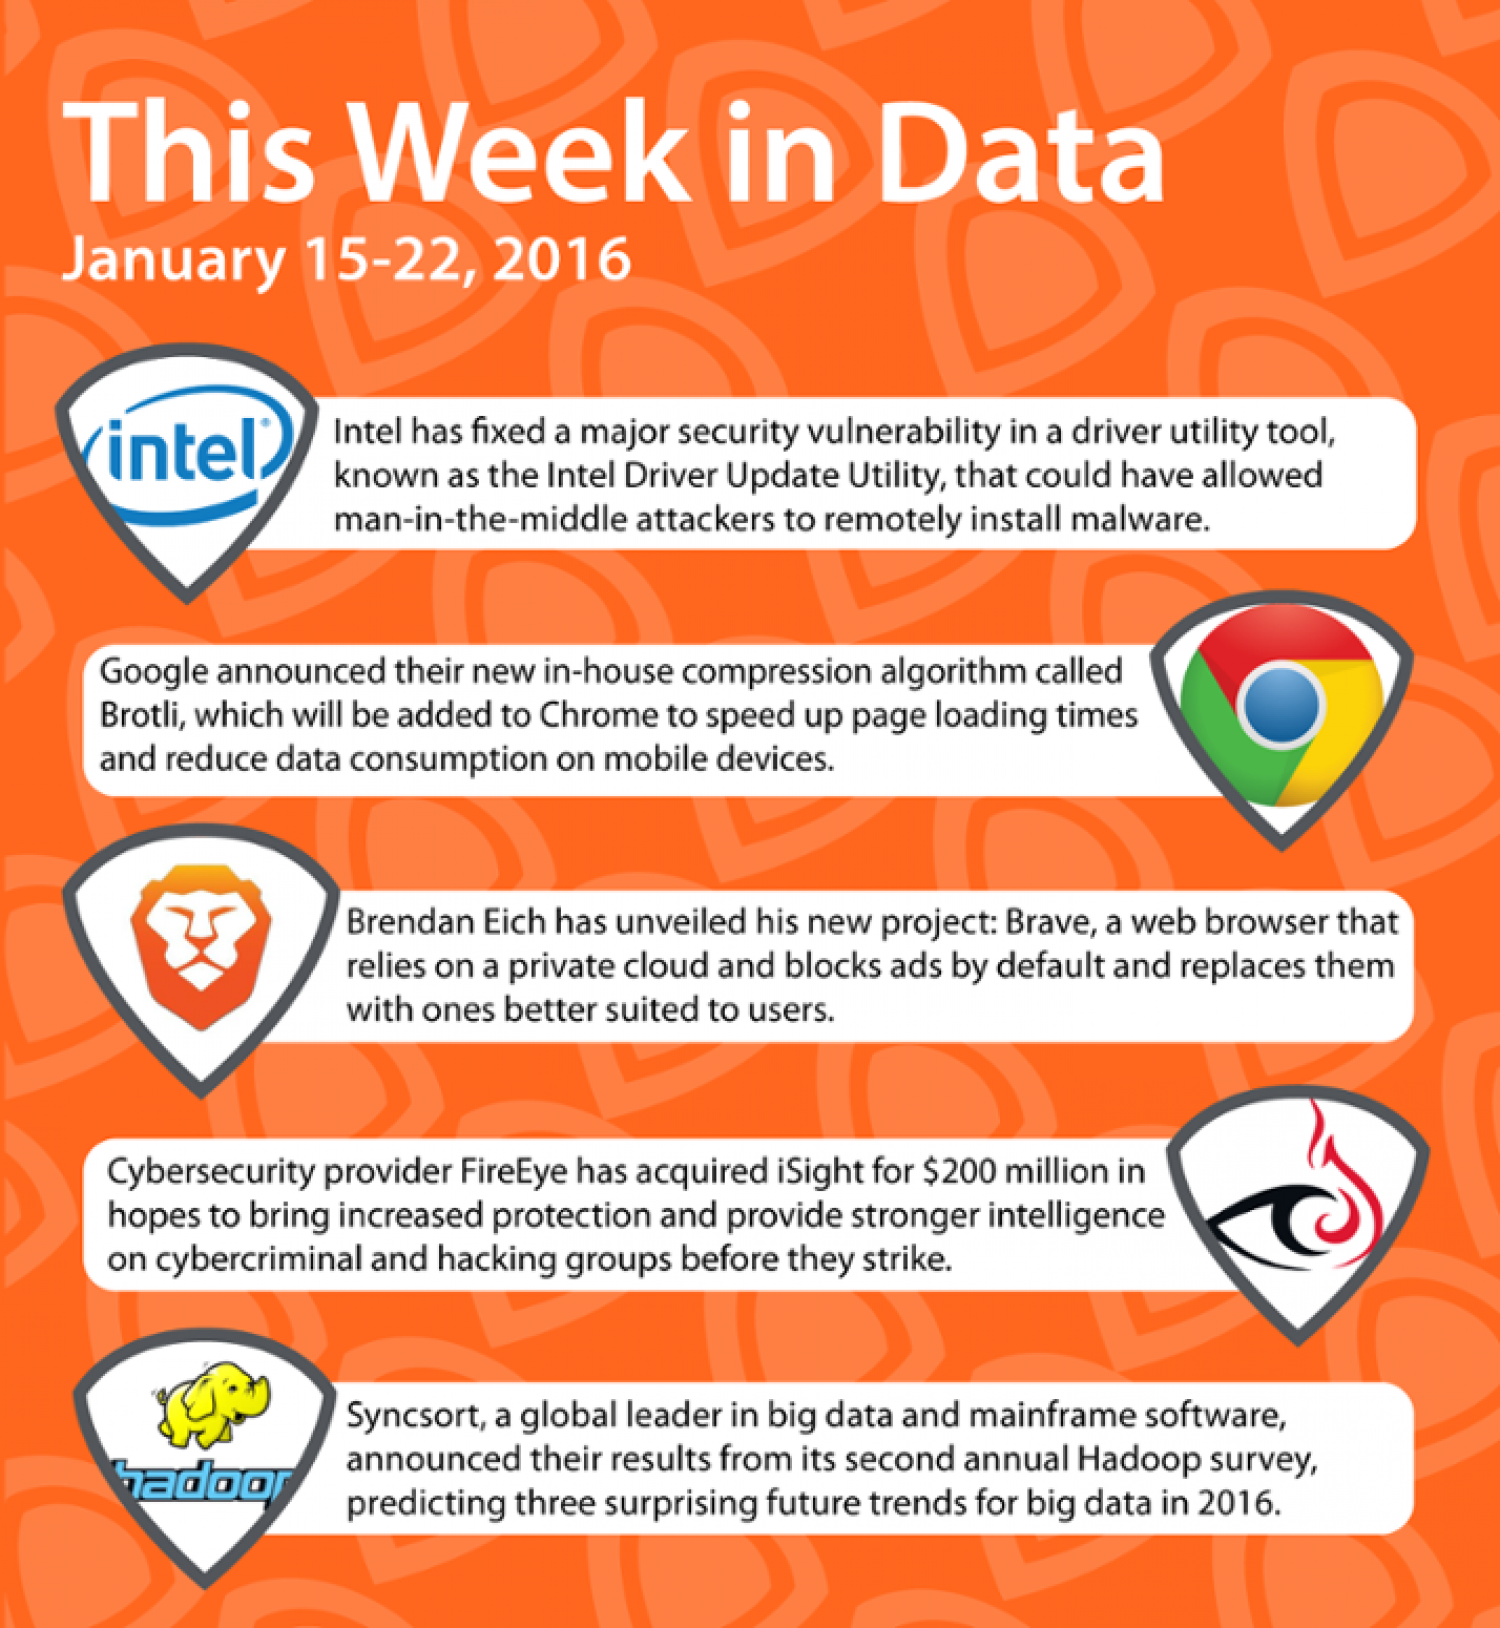 This Week in Data (January 22, 2016) Infographic